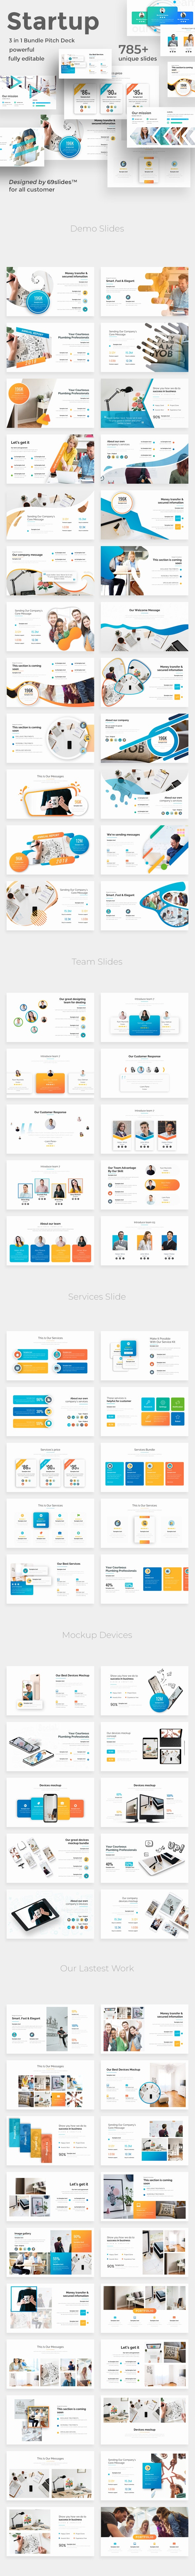 Startup Ideas 3 in 1 Pitch Deck Bundle Google Slide Template - Google Slides Presentation Templates